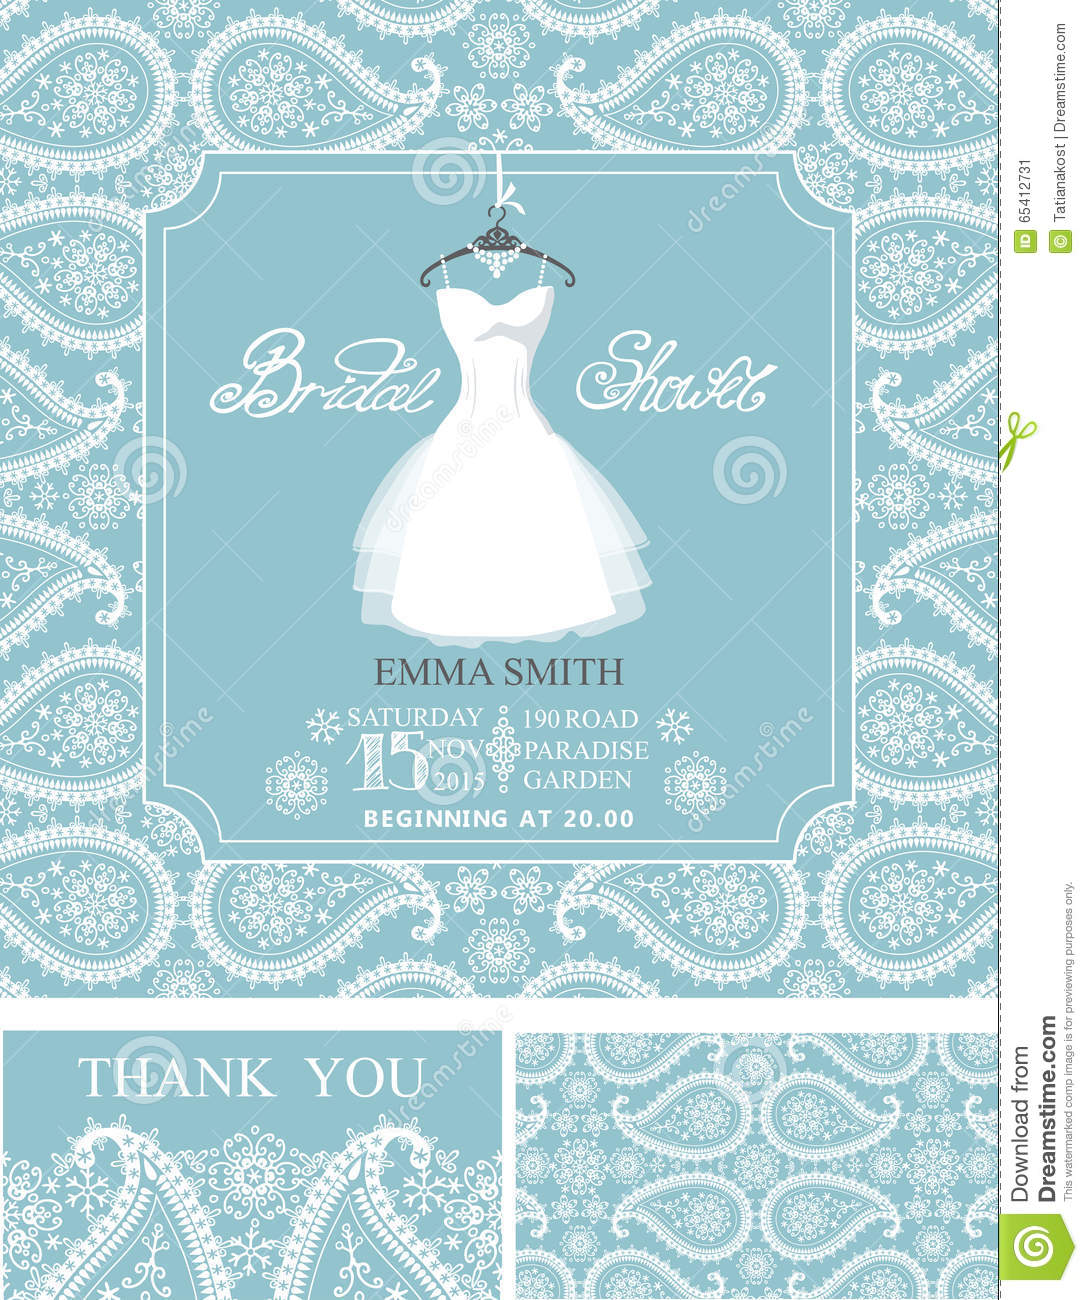 Bridal Shower InvitationsWinter Weddingornament Stock